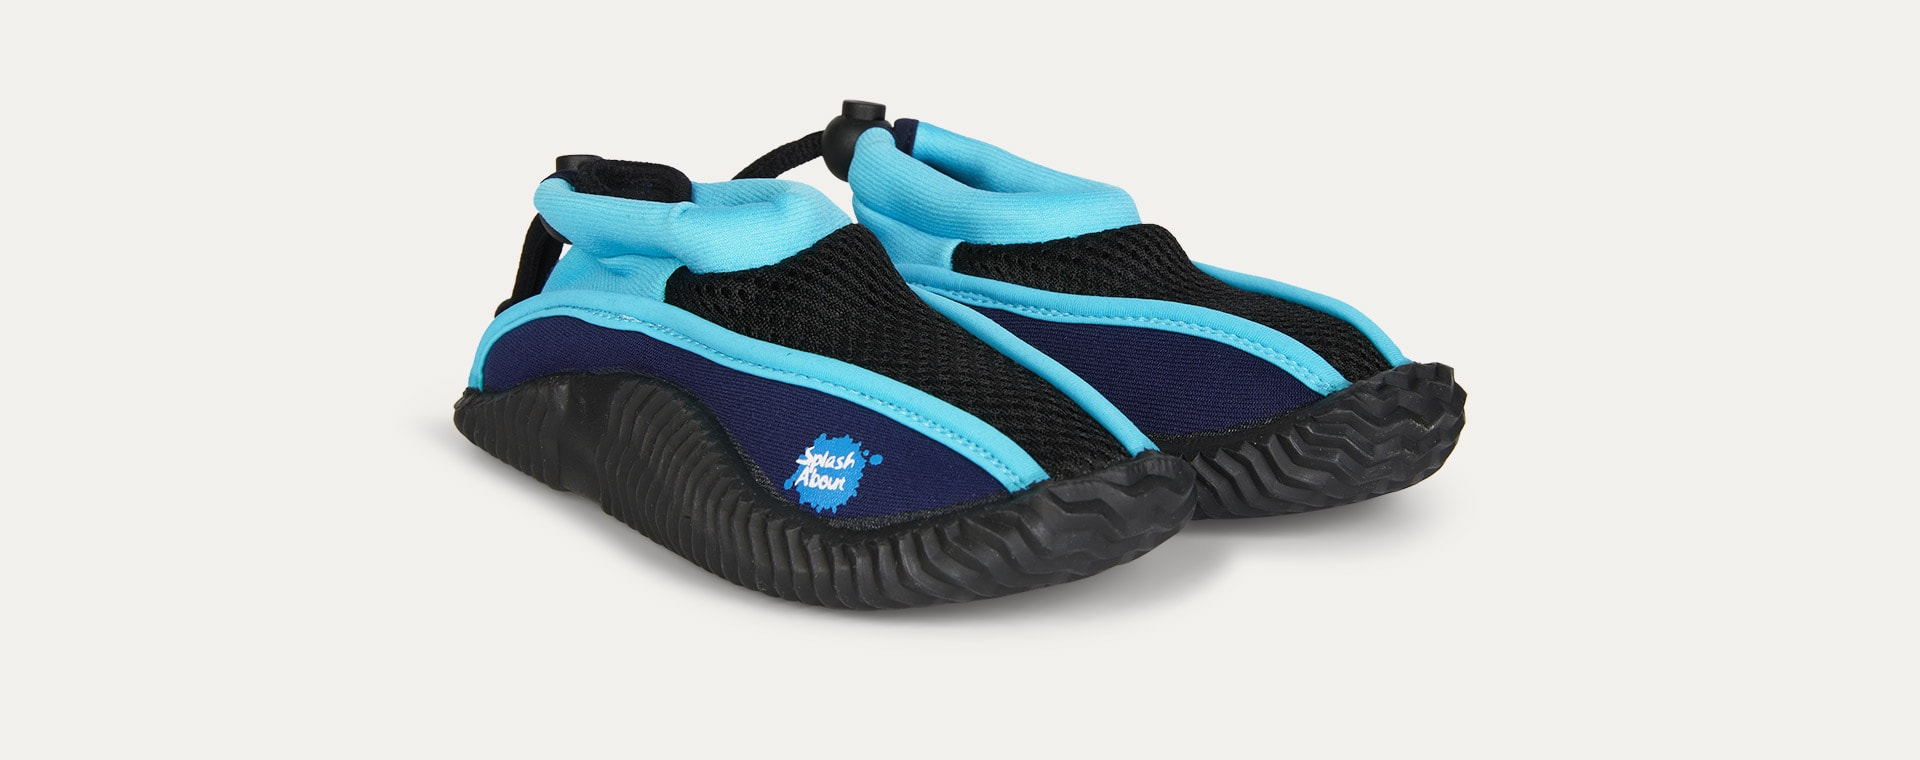 Surf Splash About Splash Shoes Firm Sole